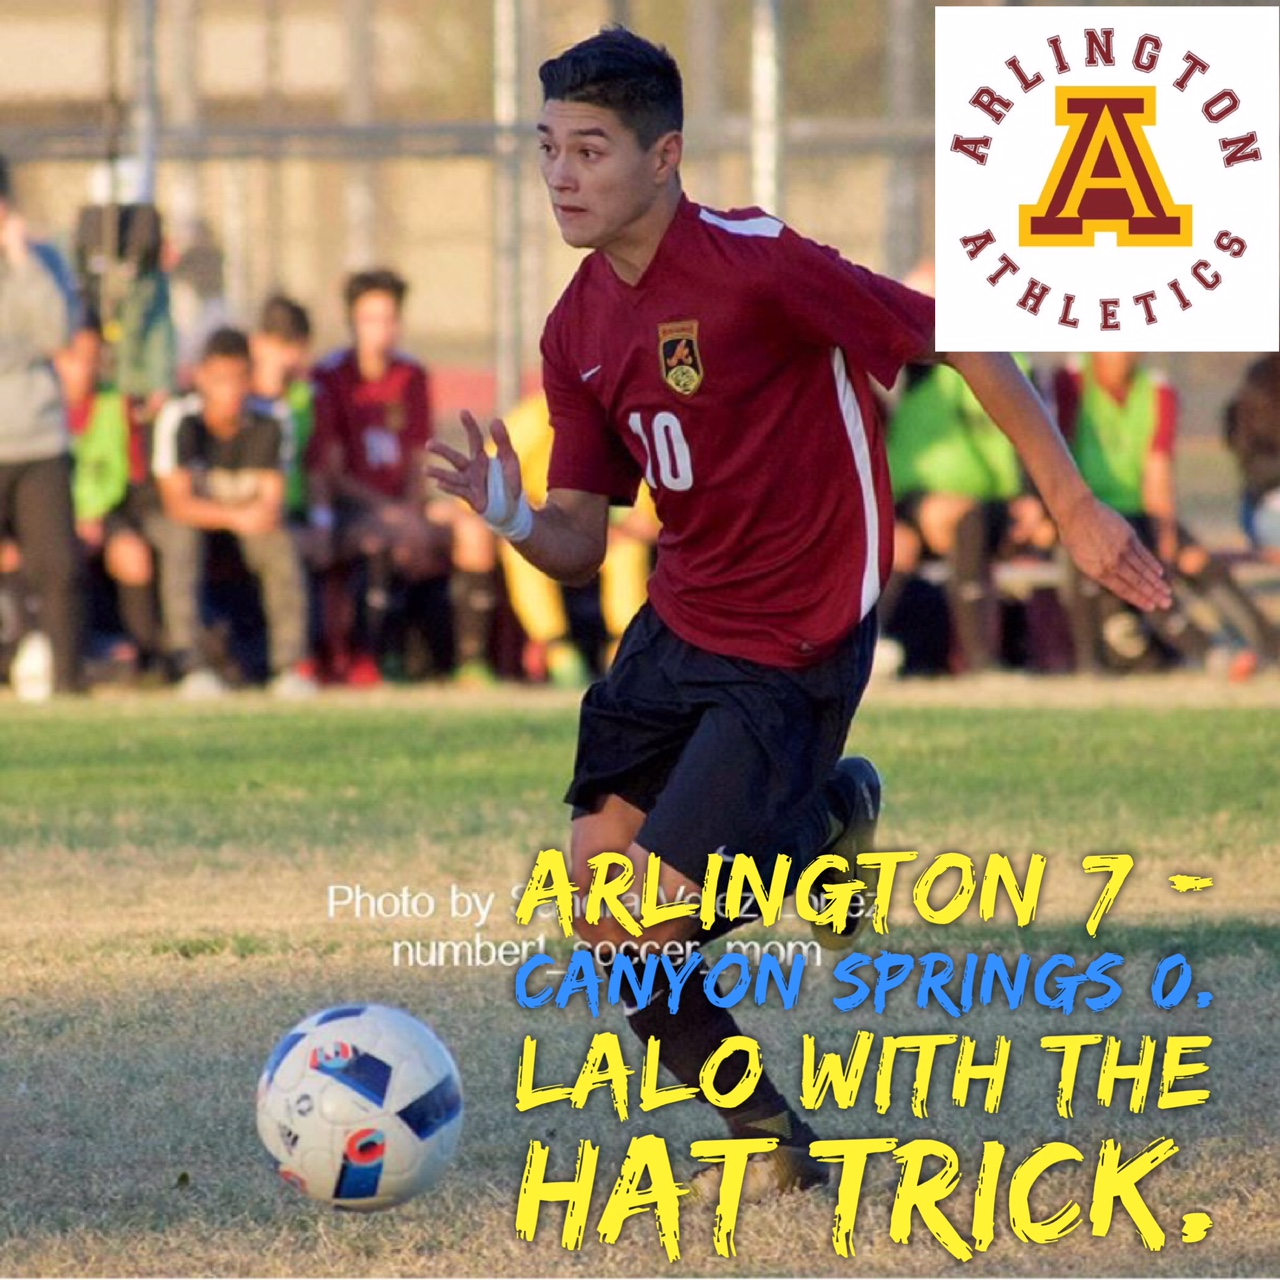 Arlington Boys Soccer beat Canyon Springs, 7-0, on Thursday, 1/18/2018.